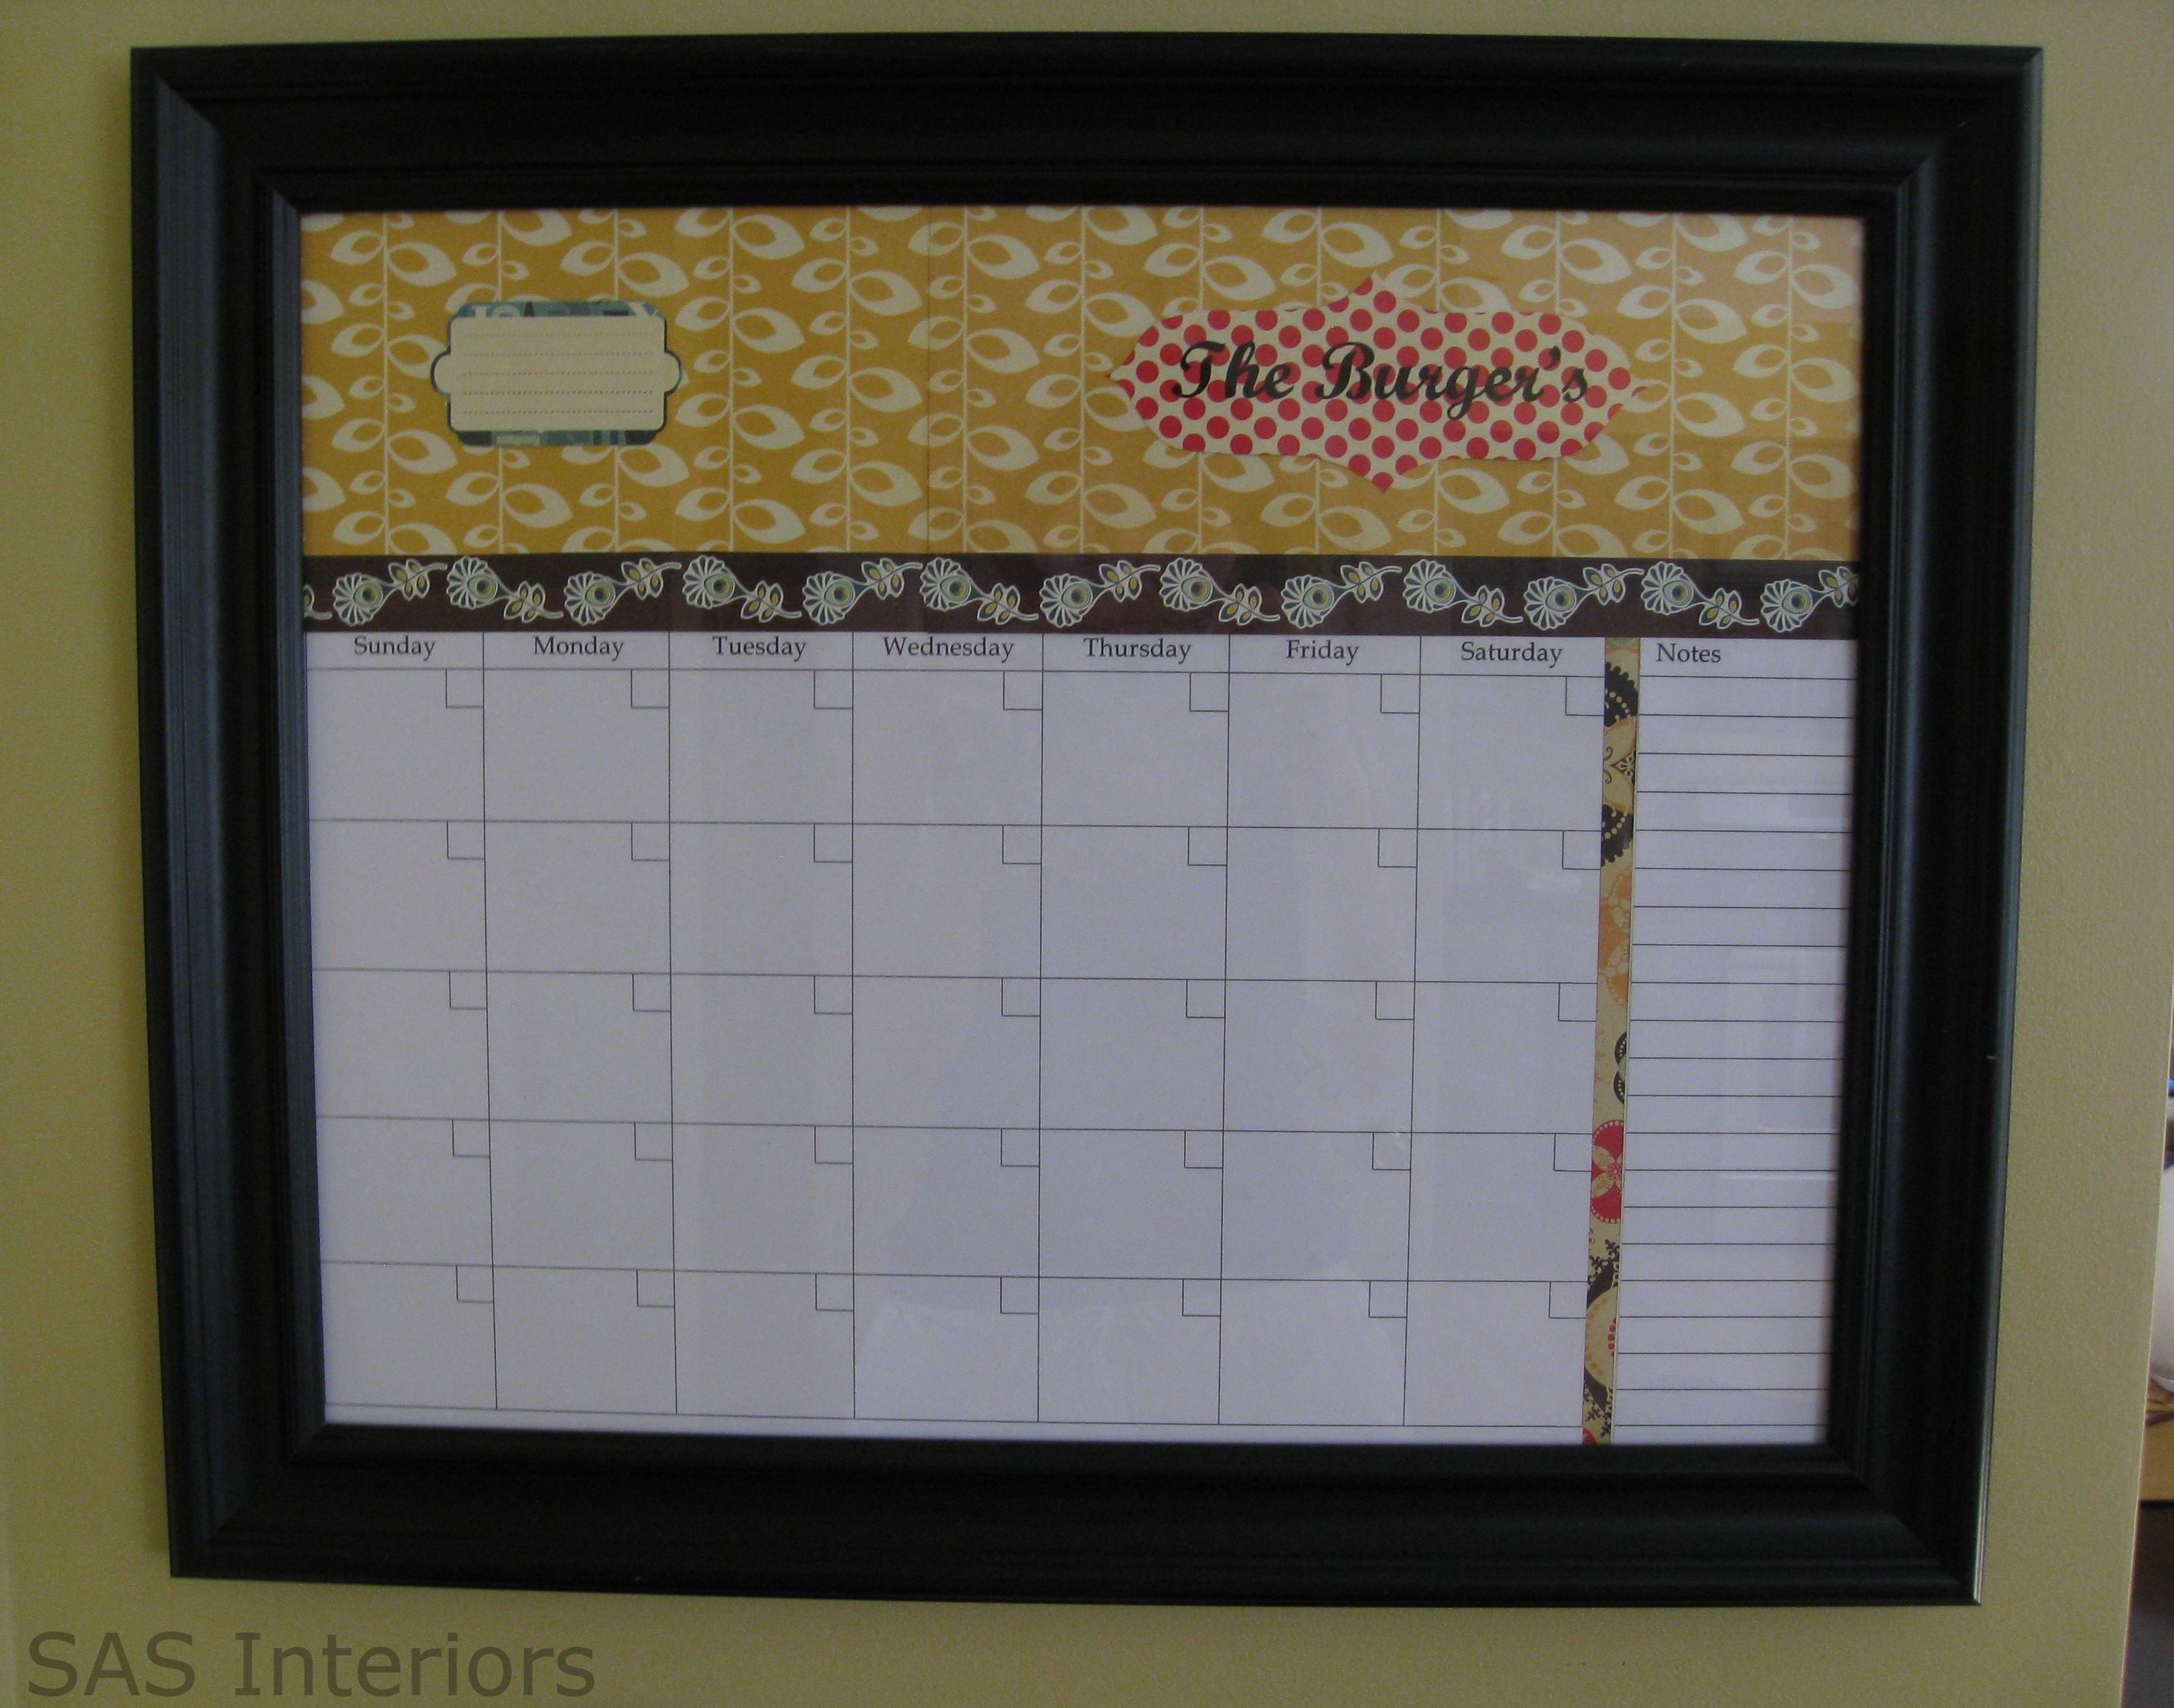 Diy personalized dry erase calendar start with a 16 x 20 frame diy personalized dry erase calendar start with a 16 x 20 frame jeuxipadfo Gallery